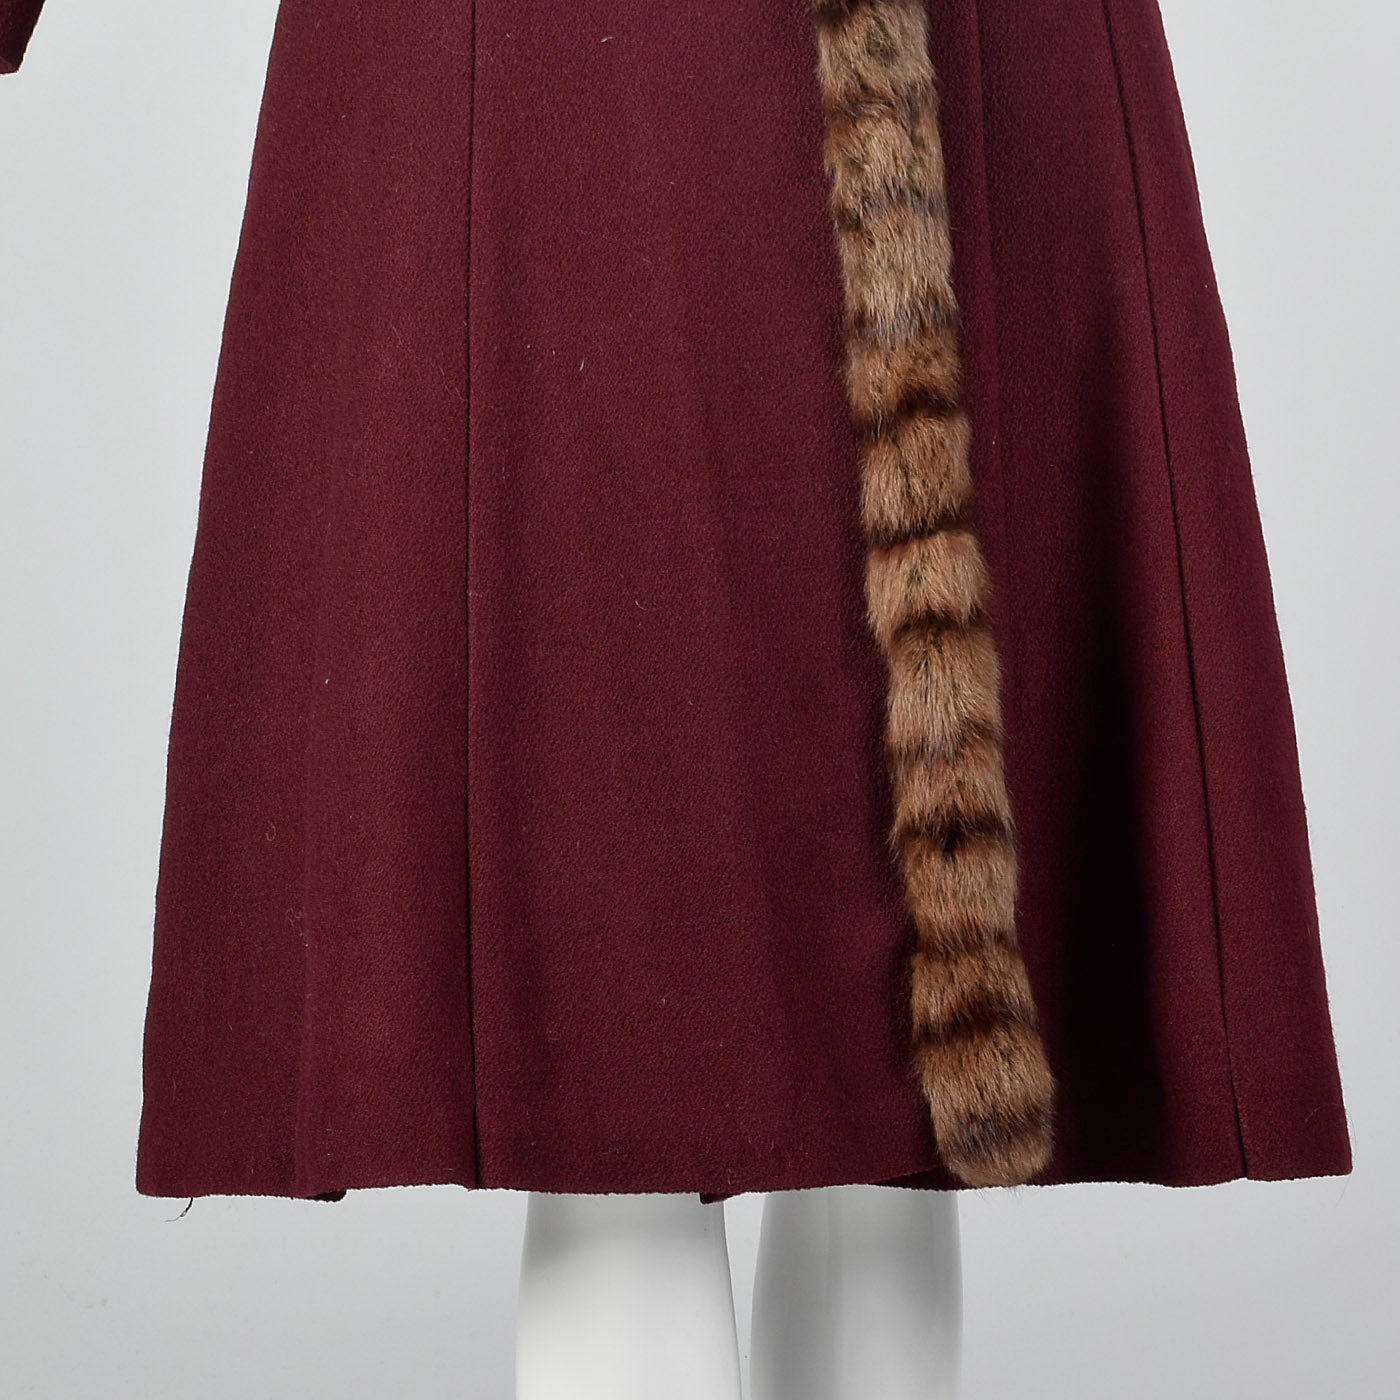 1940s Burgundy Wool Coat with Fur Trim